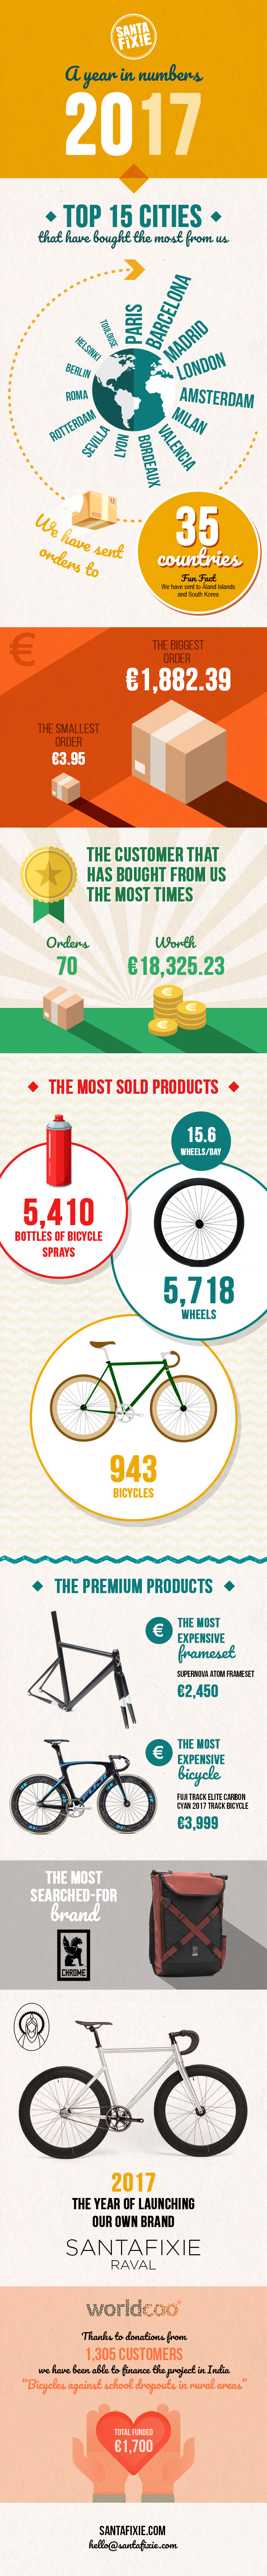 Santafixie 2017 a Year in Numbers